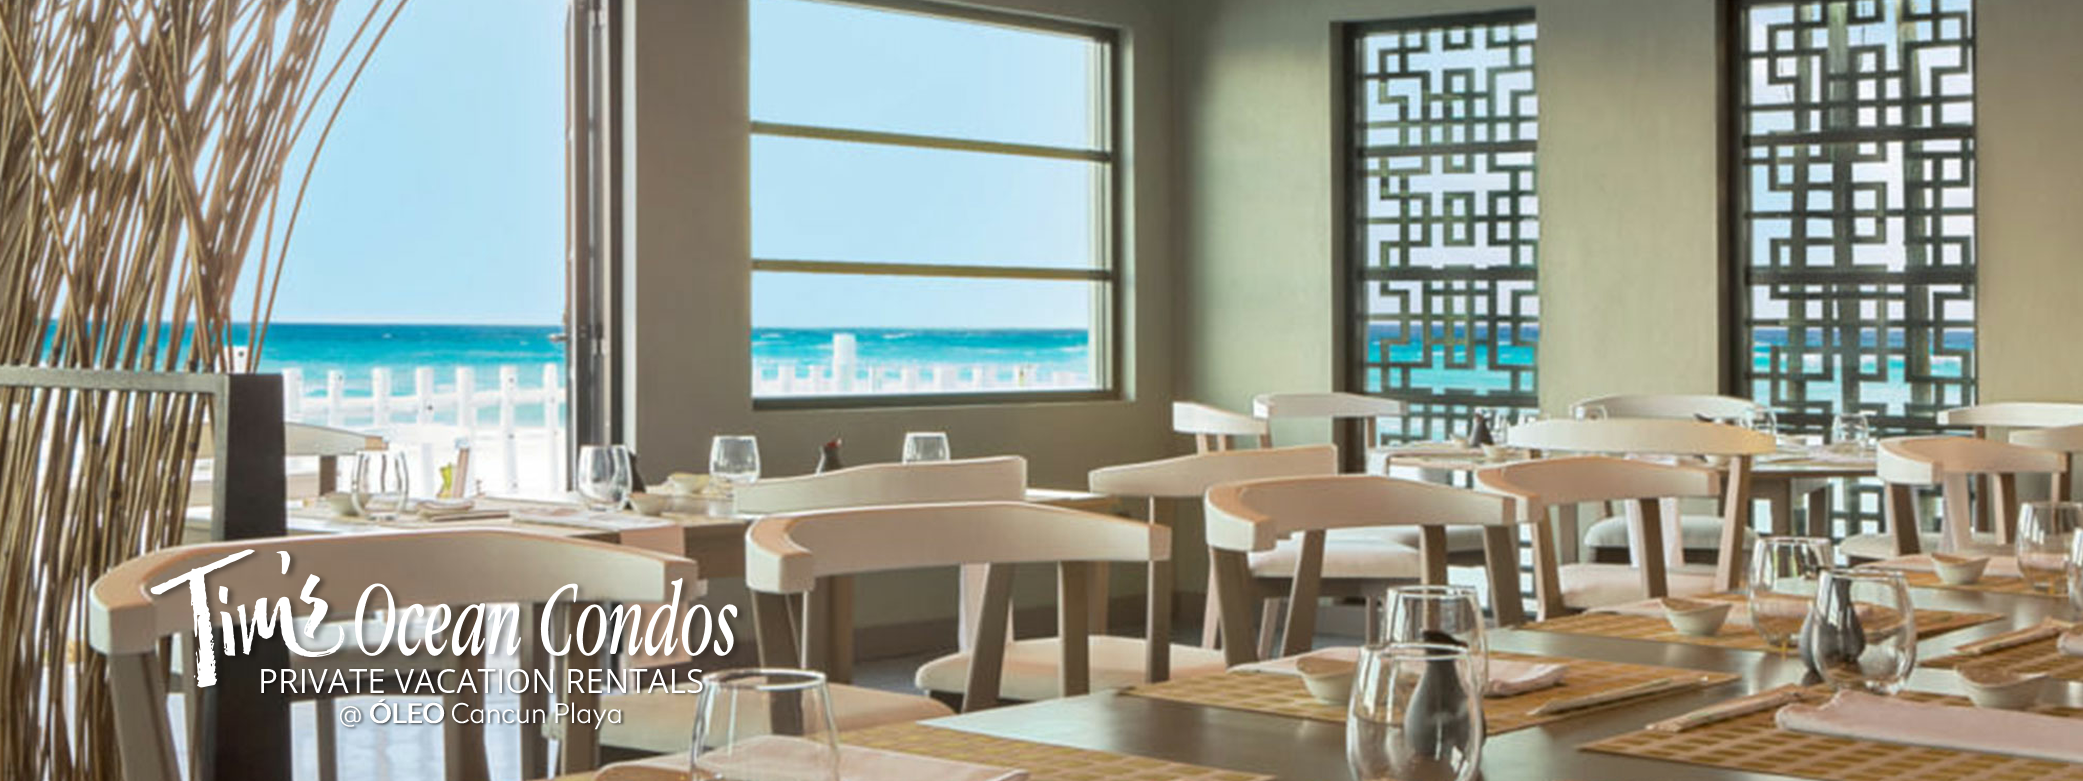 Hakka Ocean view Restaurant - Temaki and Sushi Japanese Cuisine a la carte at Óleo Cancun hotel, as part of the all-inclusive plan